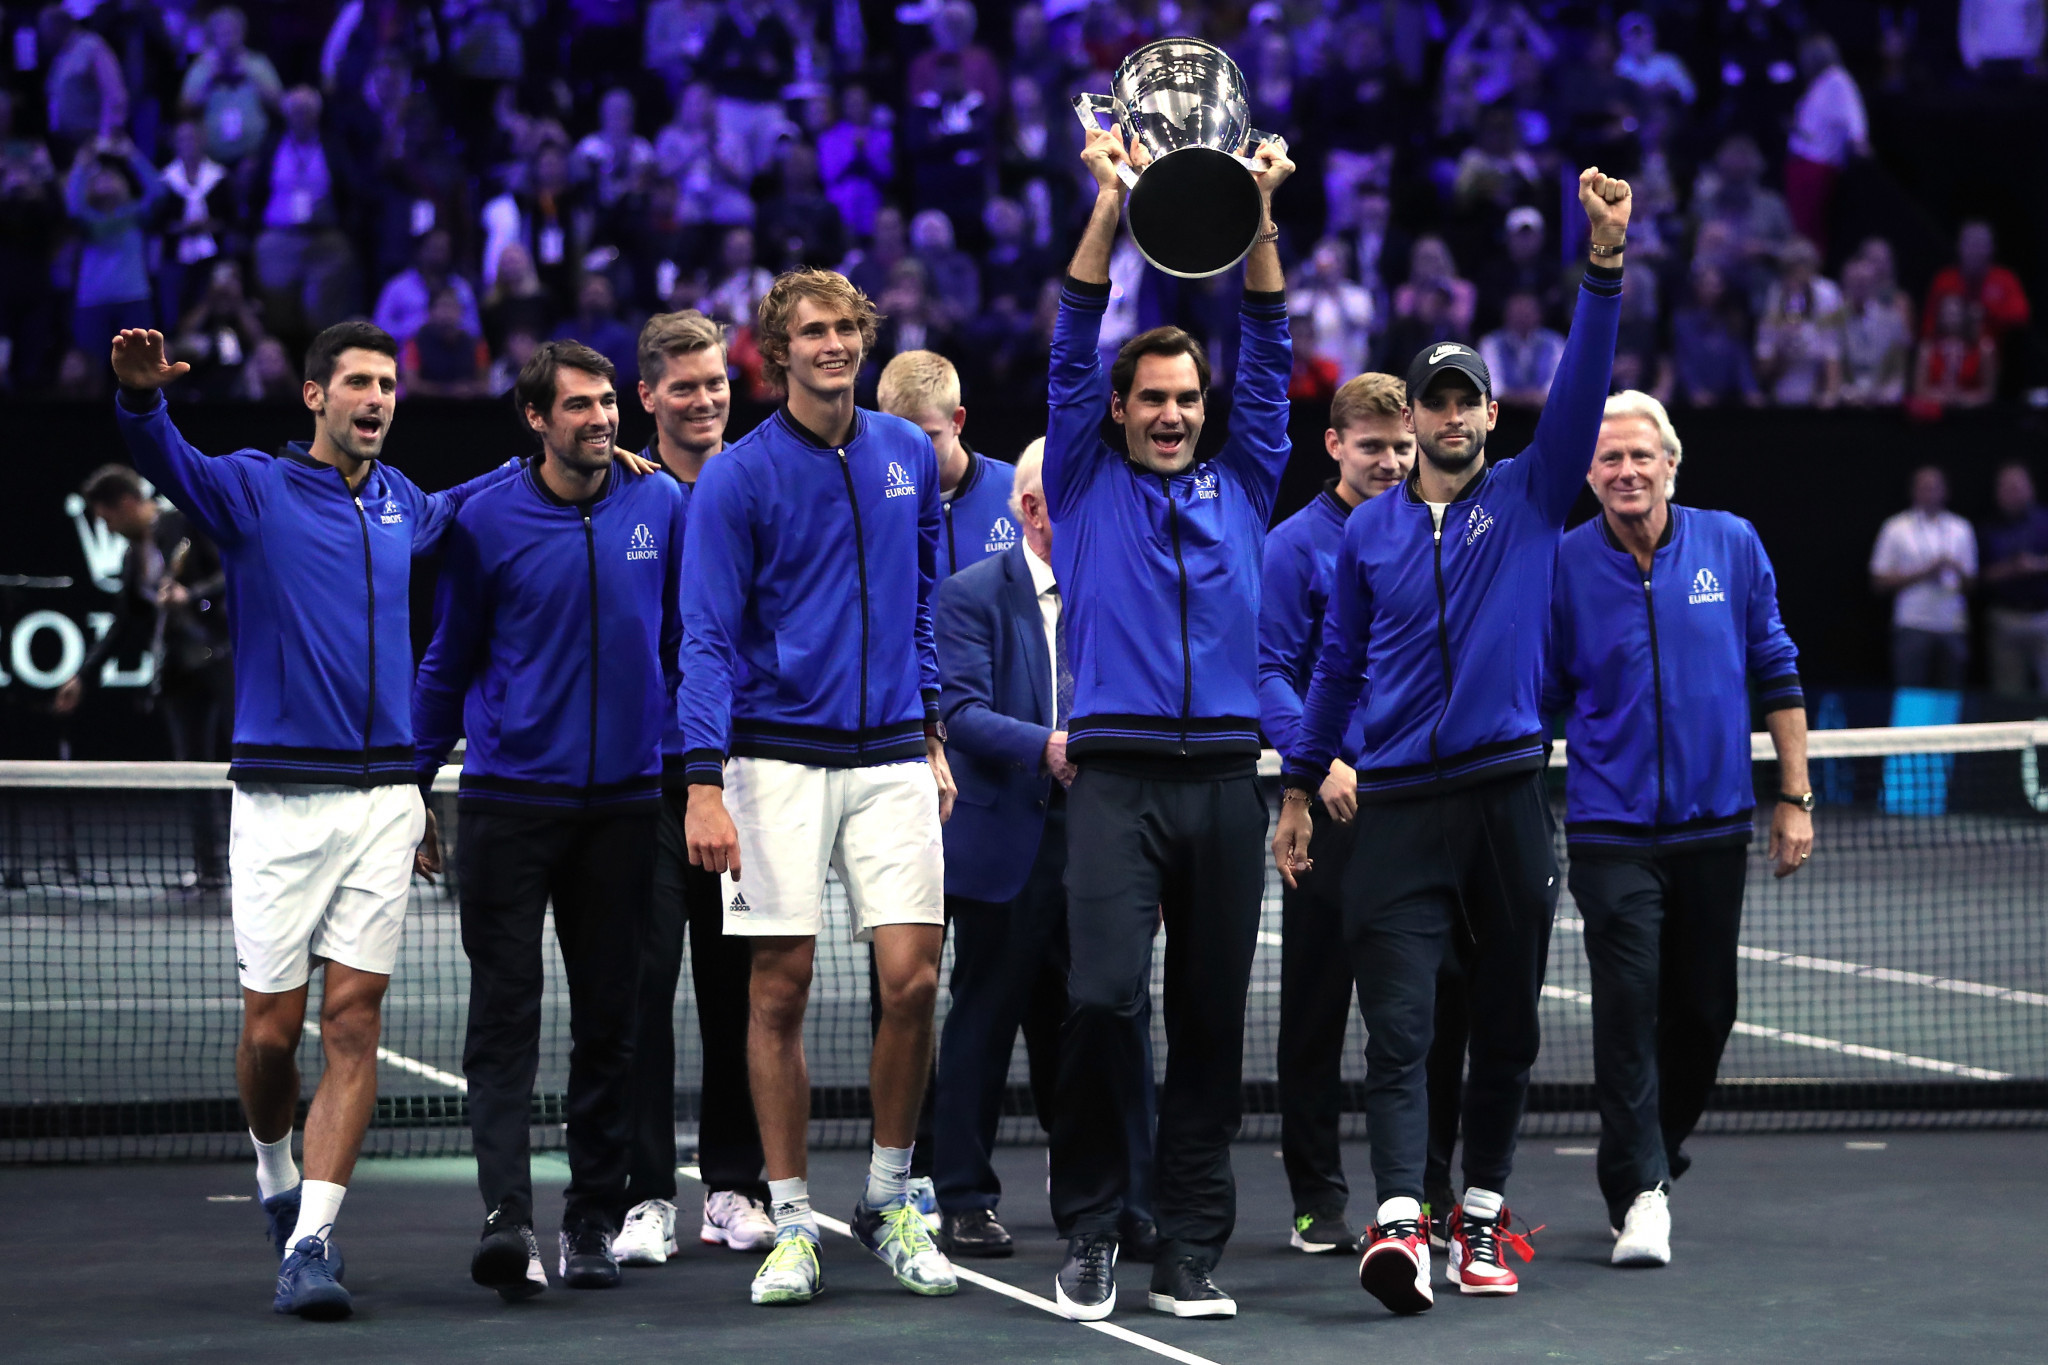 Zverev's win over Anderson confirms successful defence of Laver Cup by Team Europe